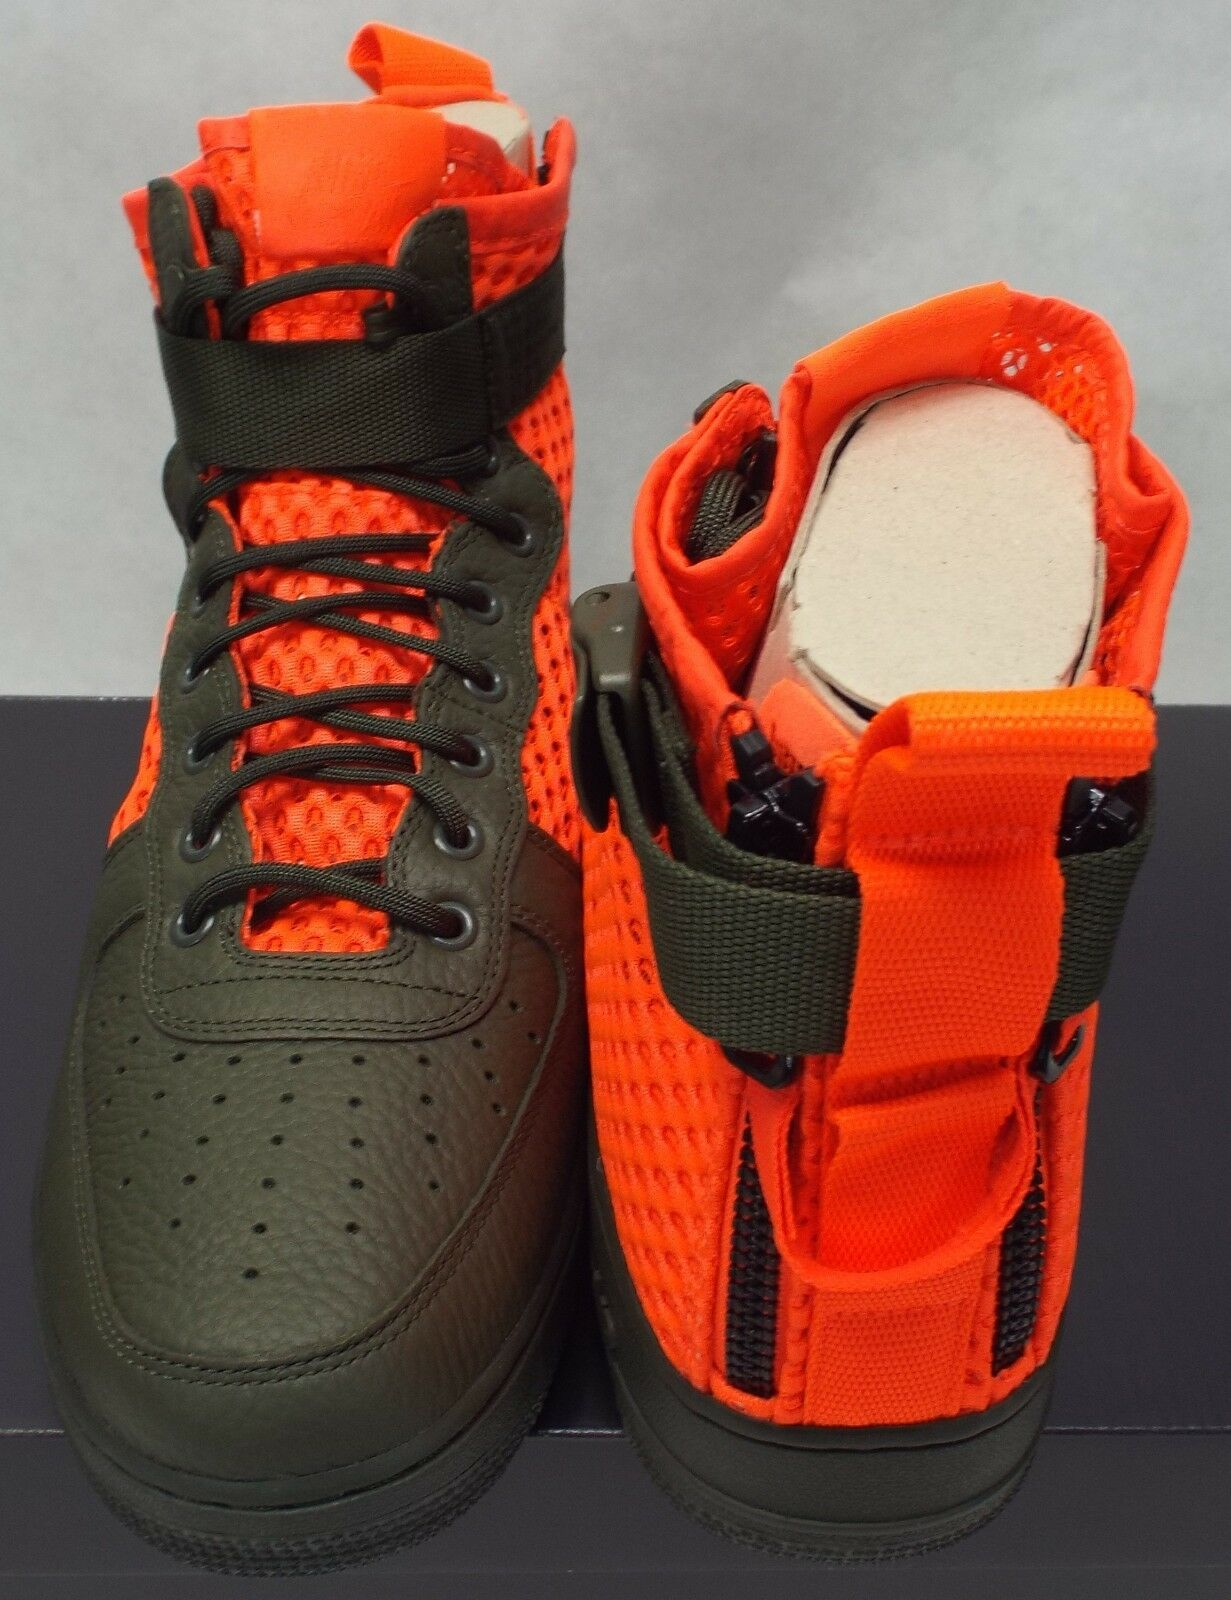 HOMMES 12 NIKE SF AF1 Mid QS Hunting Hiking 170 Orange vert Chaussures  170 Hiking AA7345-300 bed247